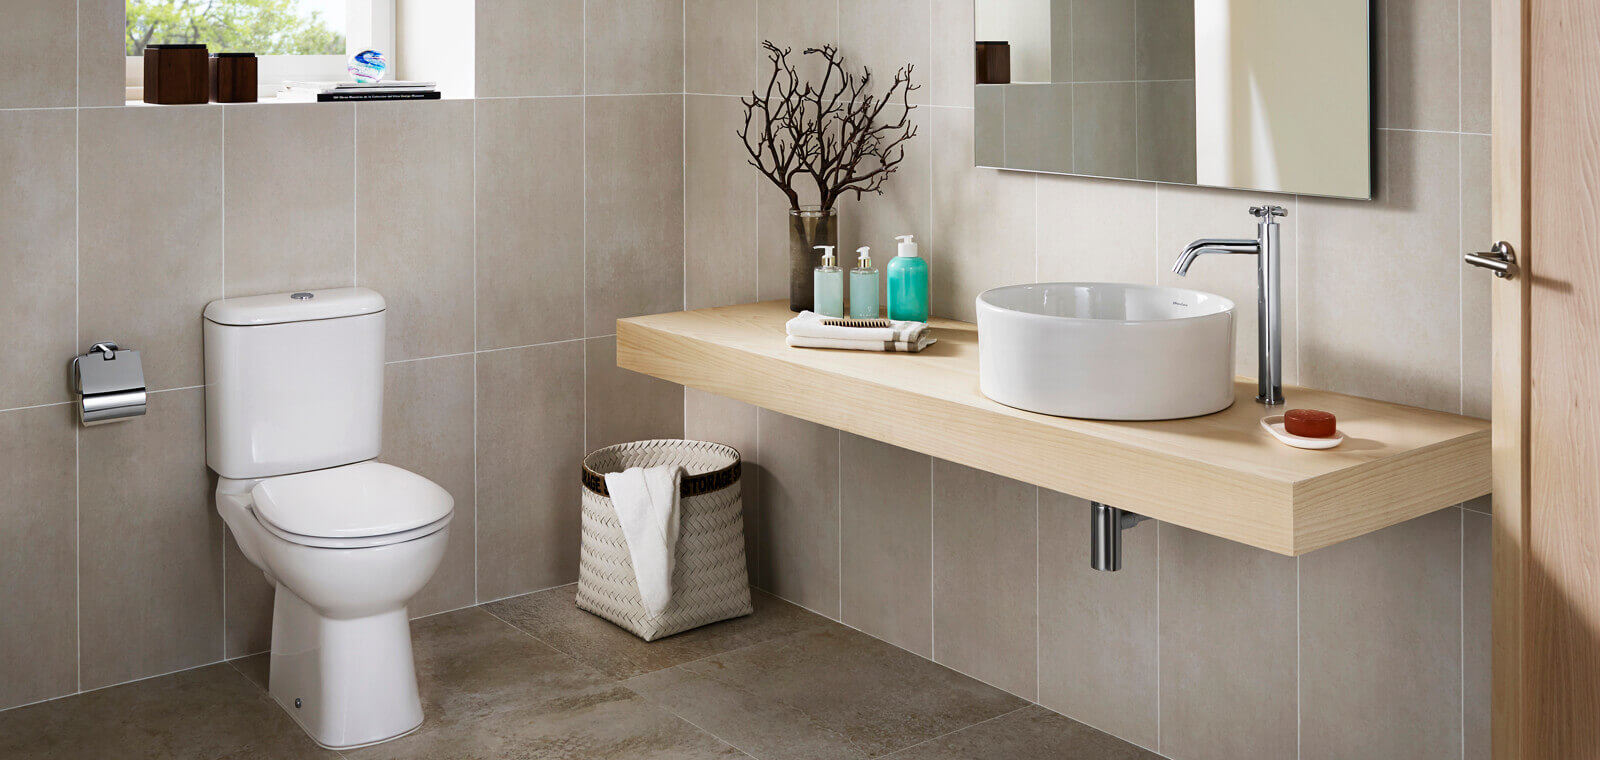 Johnson suisse malaysia sanitary ware kitchen ware for Bathroom designs malaysia